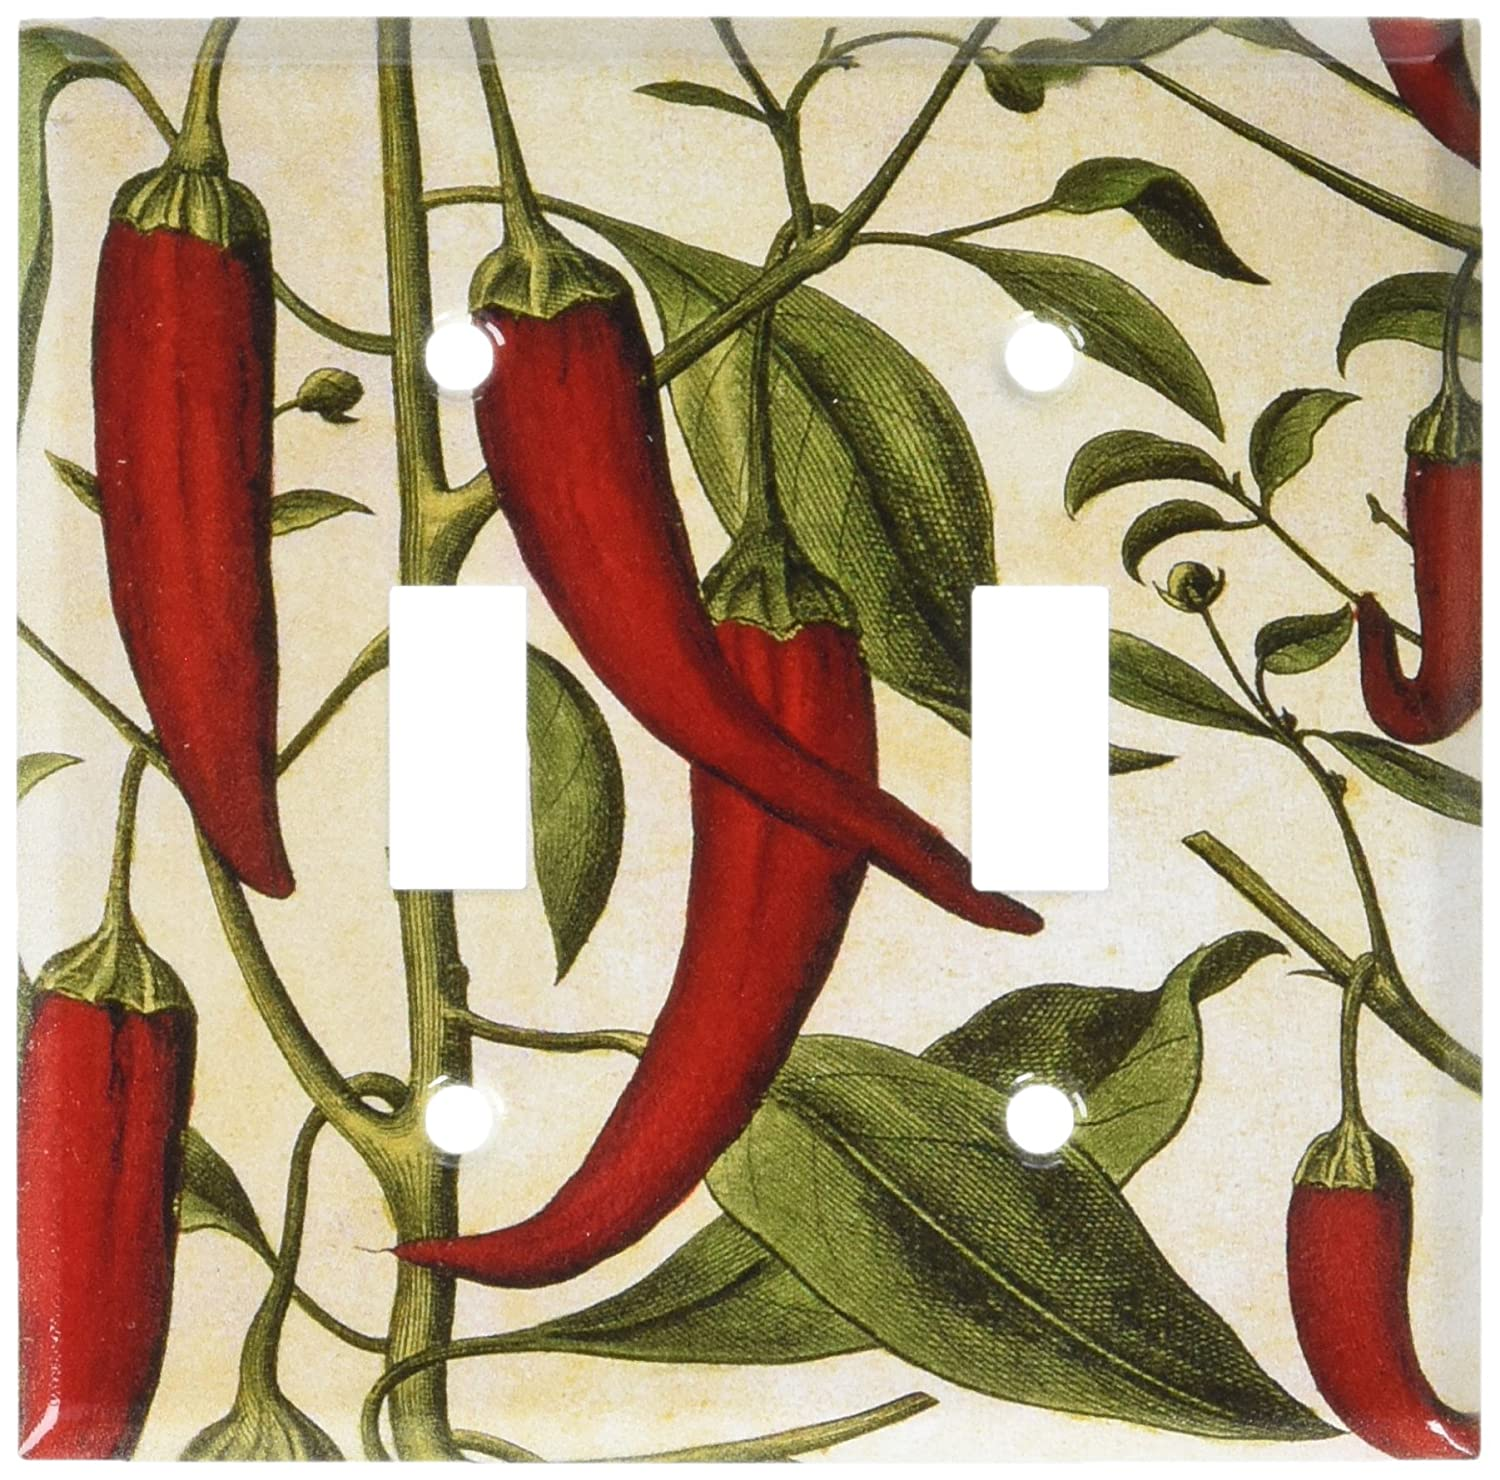 Art Plates Single Toggle Red Chile Peppers Switch Plate